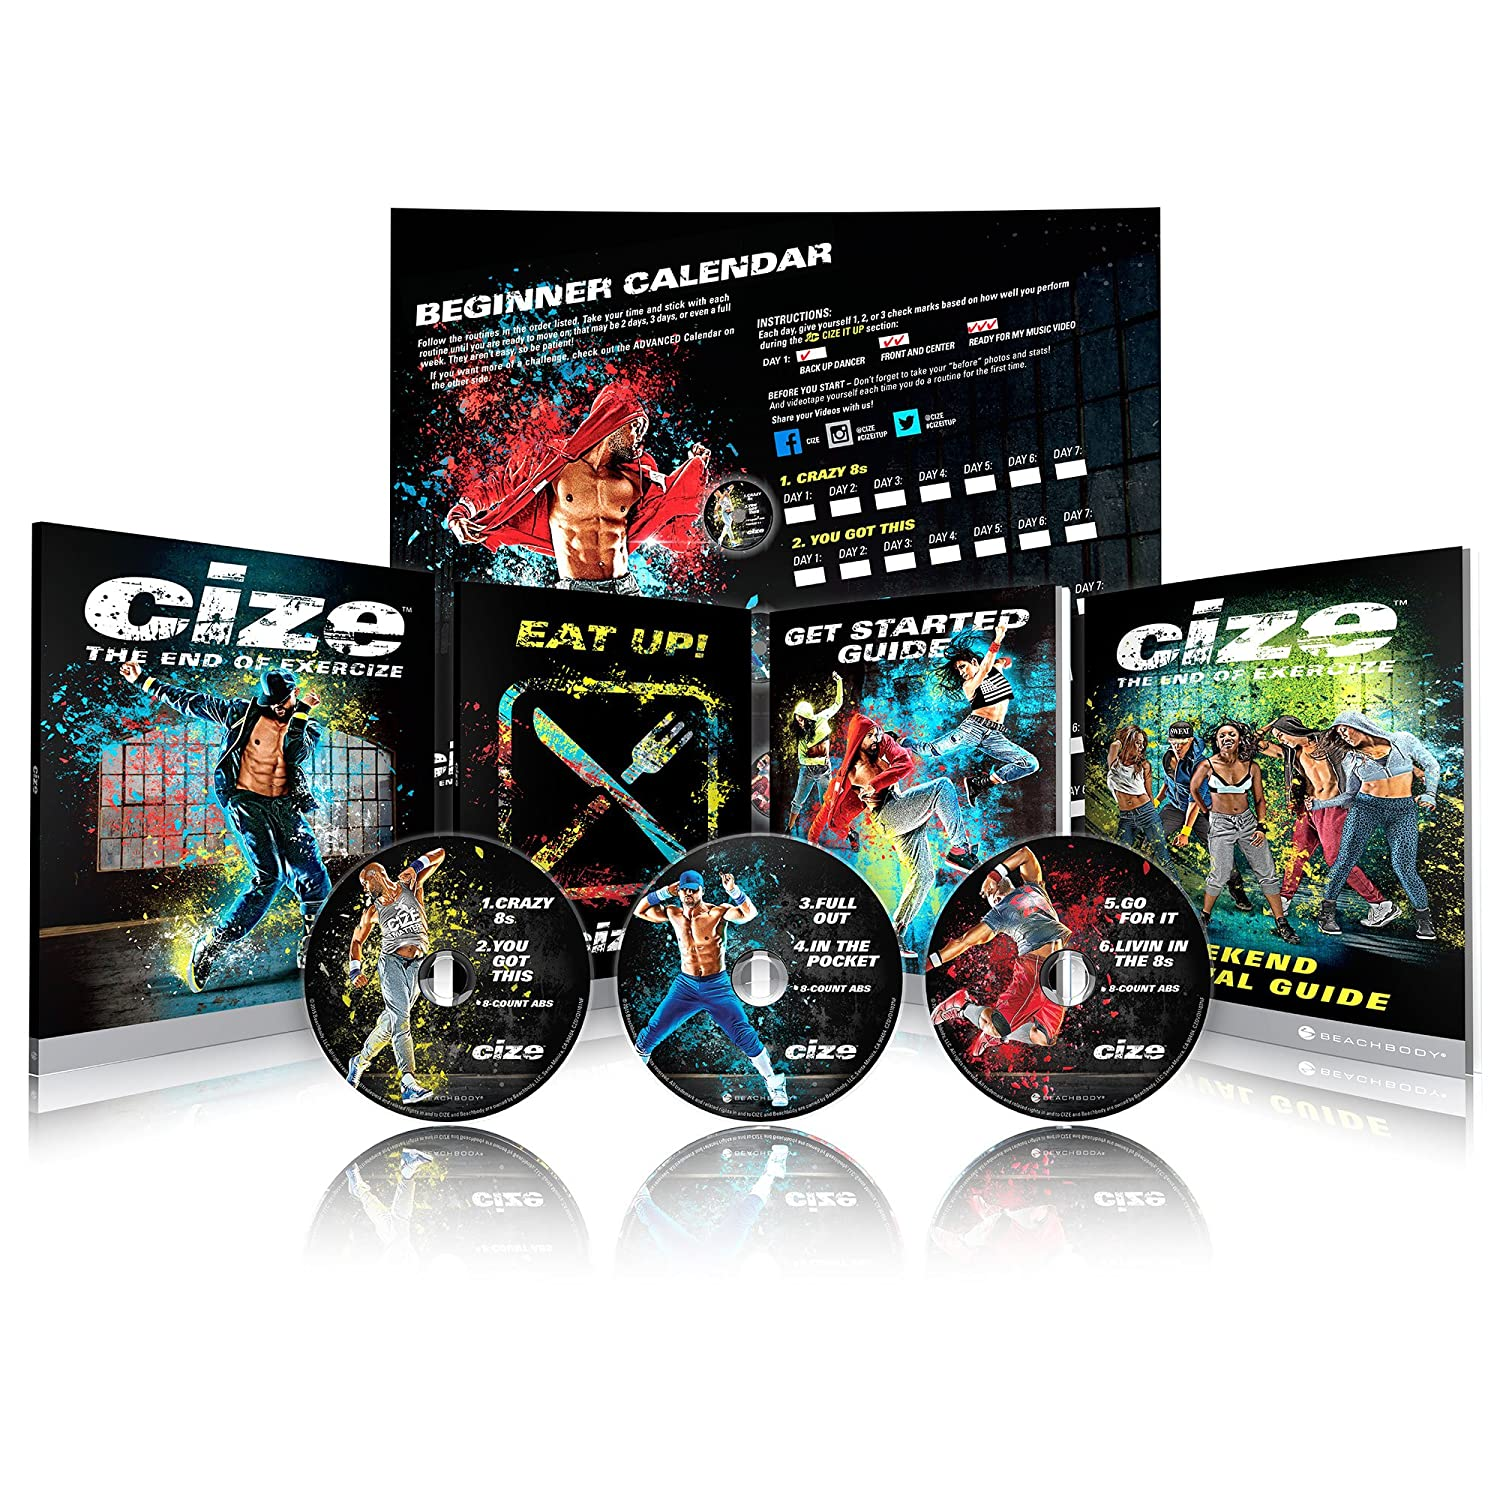 CIZE Dance Workout Base Kit - Shaun T Beachbody